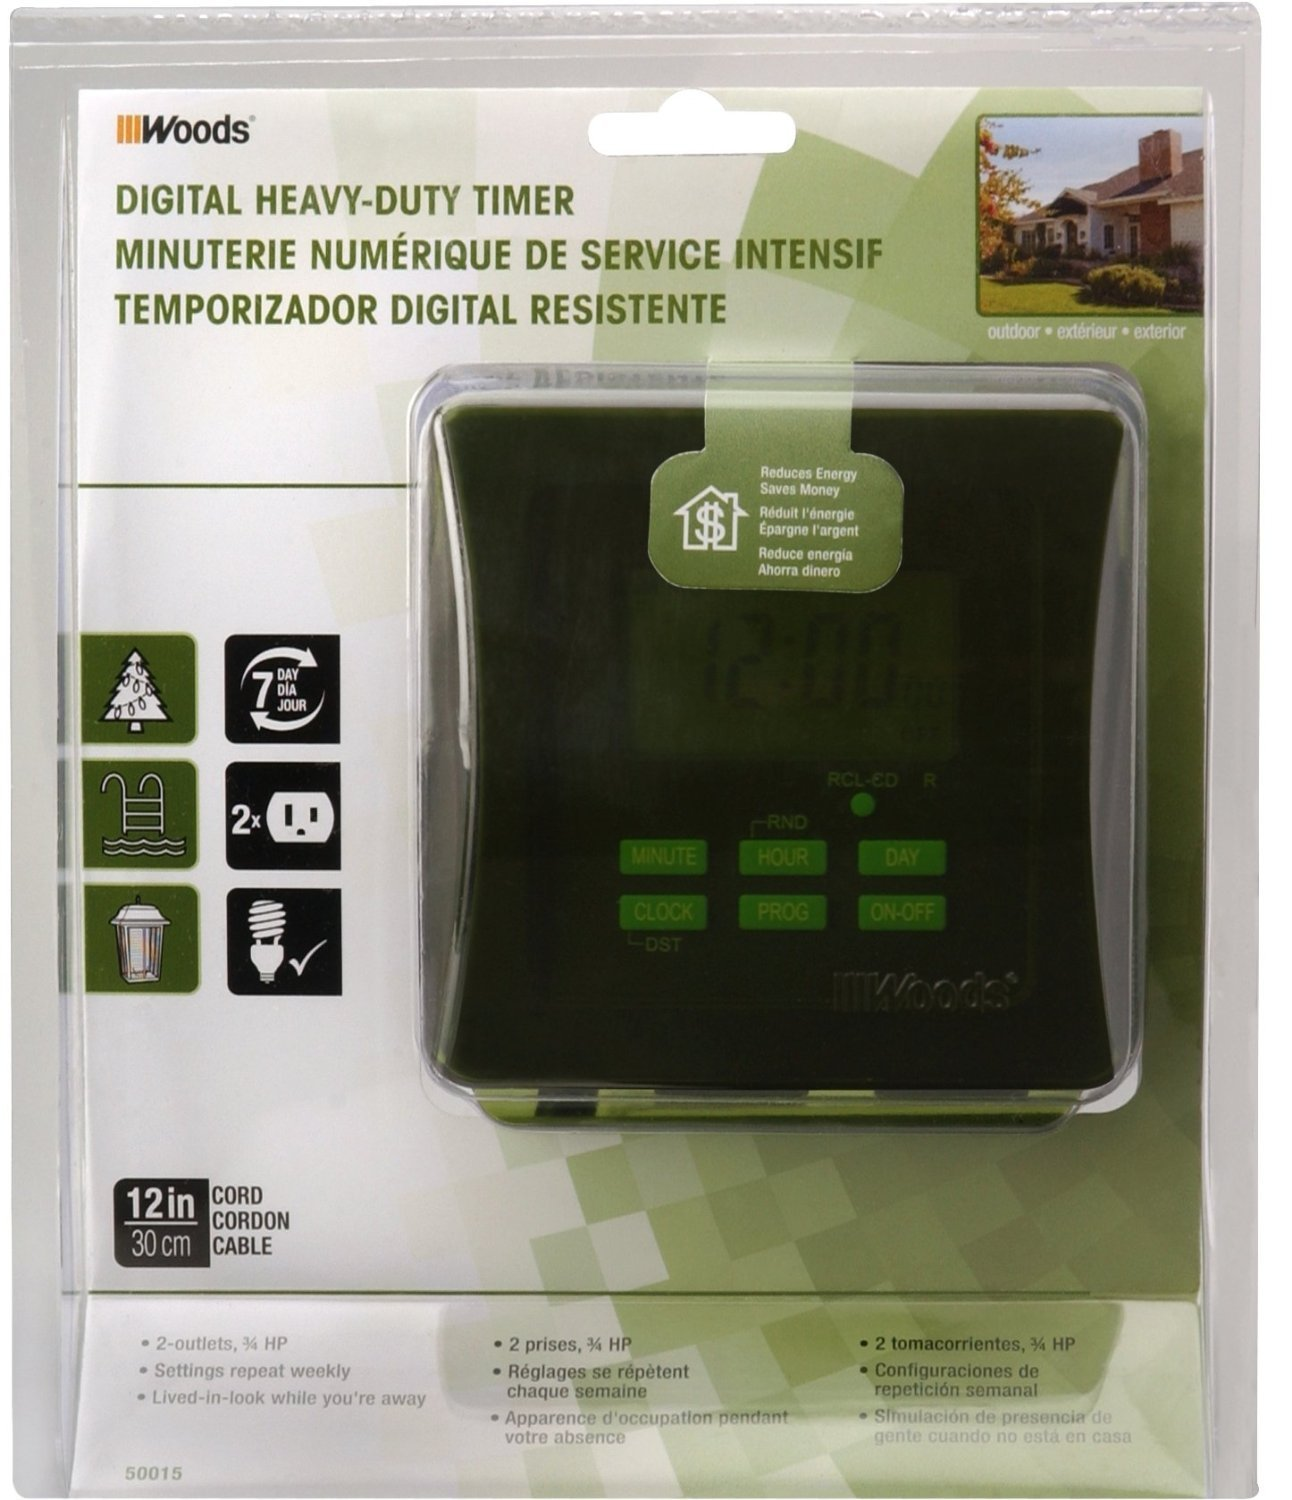 Coleman Cable 50015 6 Pack 7-Day Outdoor Digital Heavy Duty Timer by Woods (Image #3)